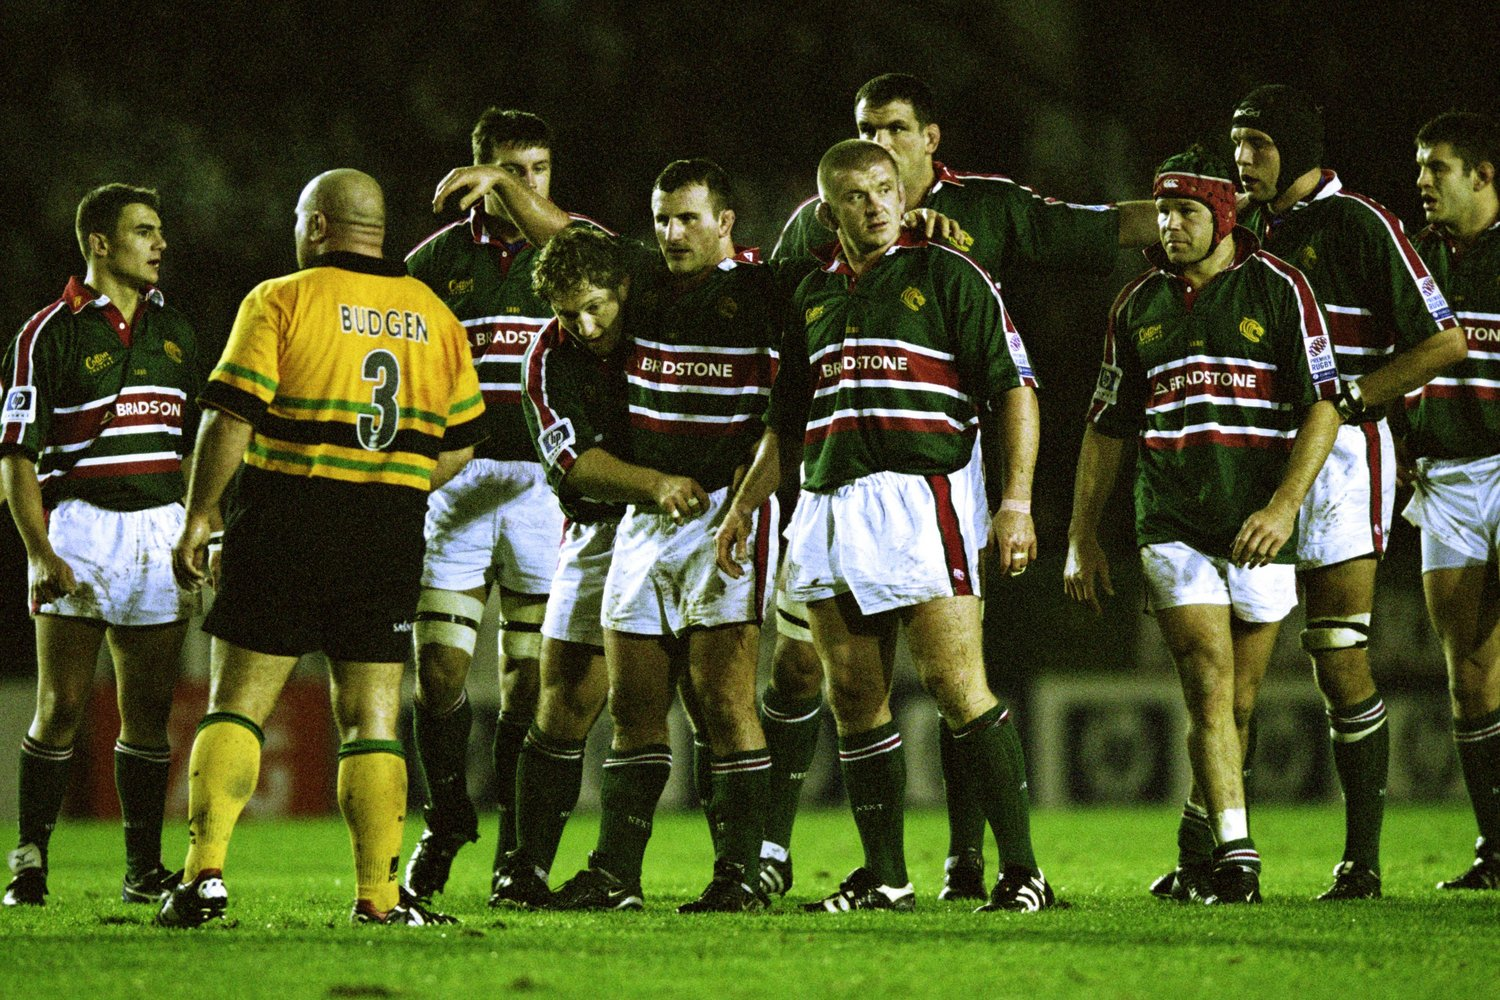 Tigers front row Tournaire, Chuter and Rowntree lead the charge in 2002